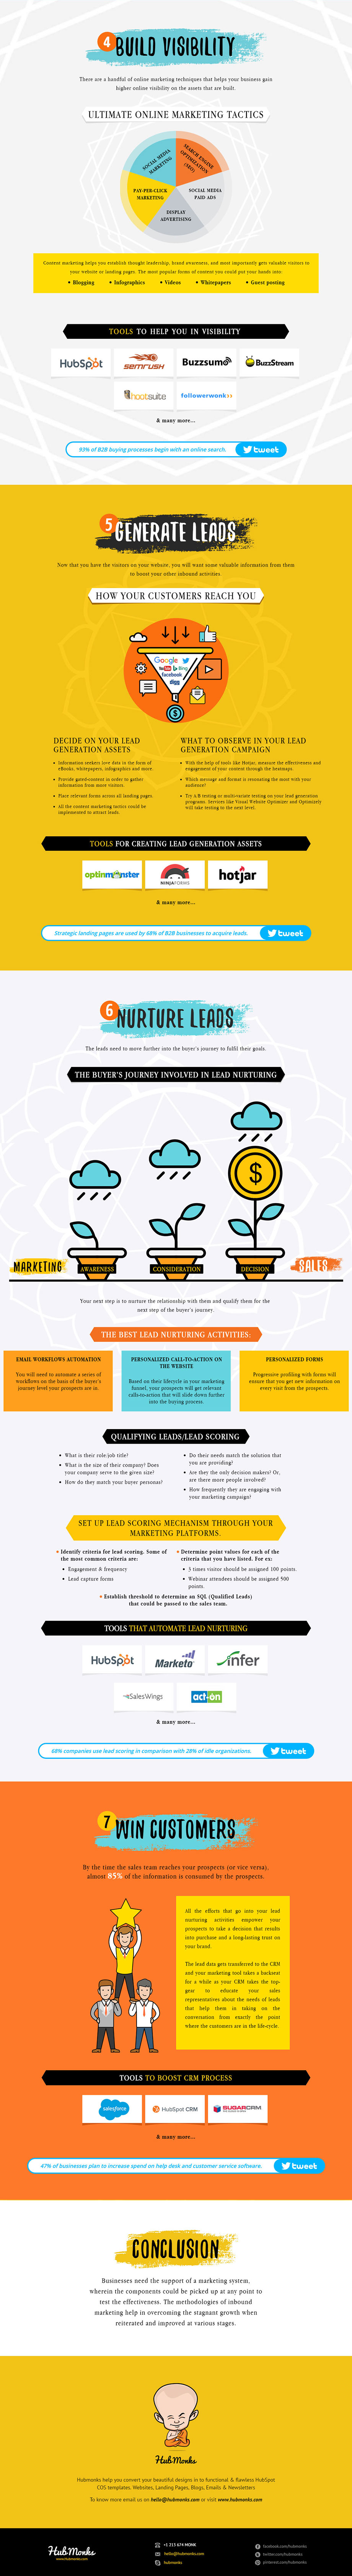 7 Mantras of Inbound Marketing (Infographic) - 2